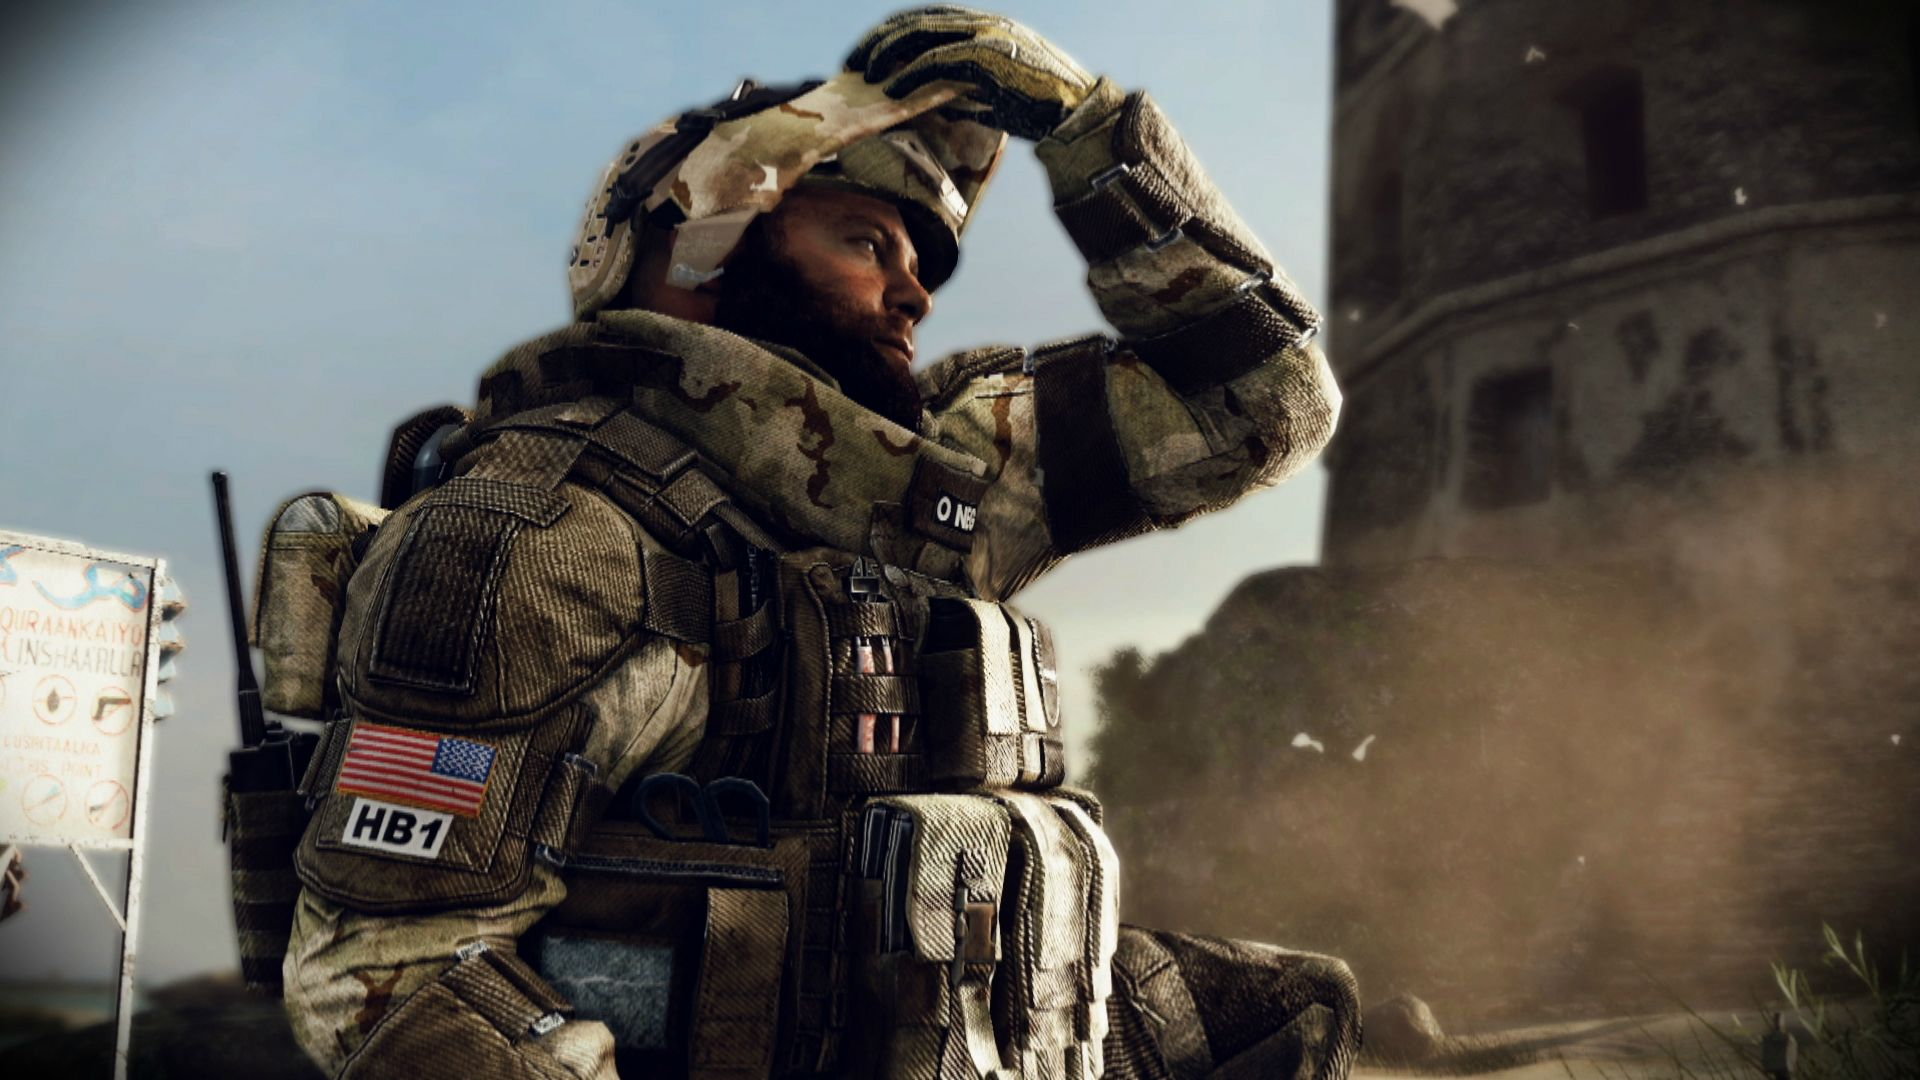 Este trailer de Medal of Honor: Warfighter, dice estar basado en un hecho real [Vídeo]